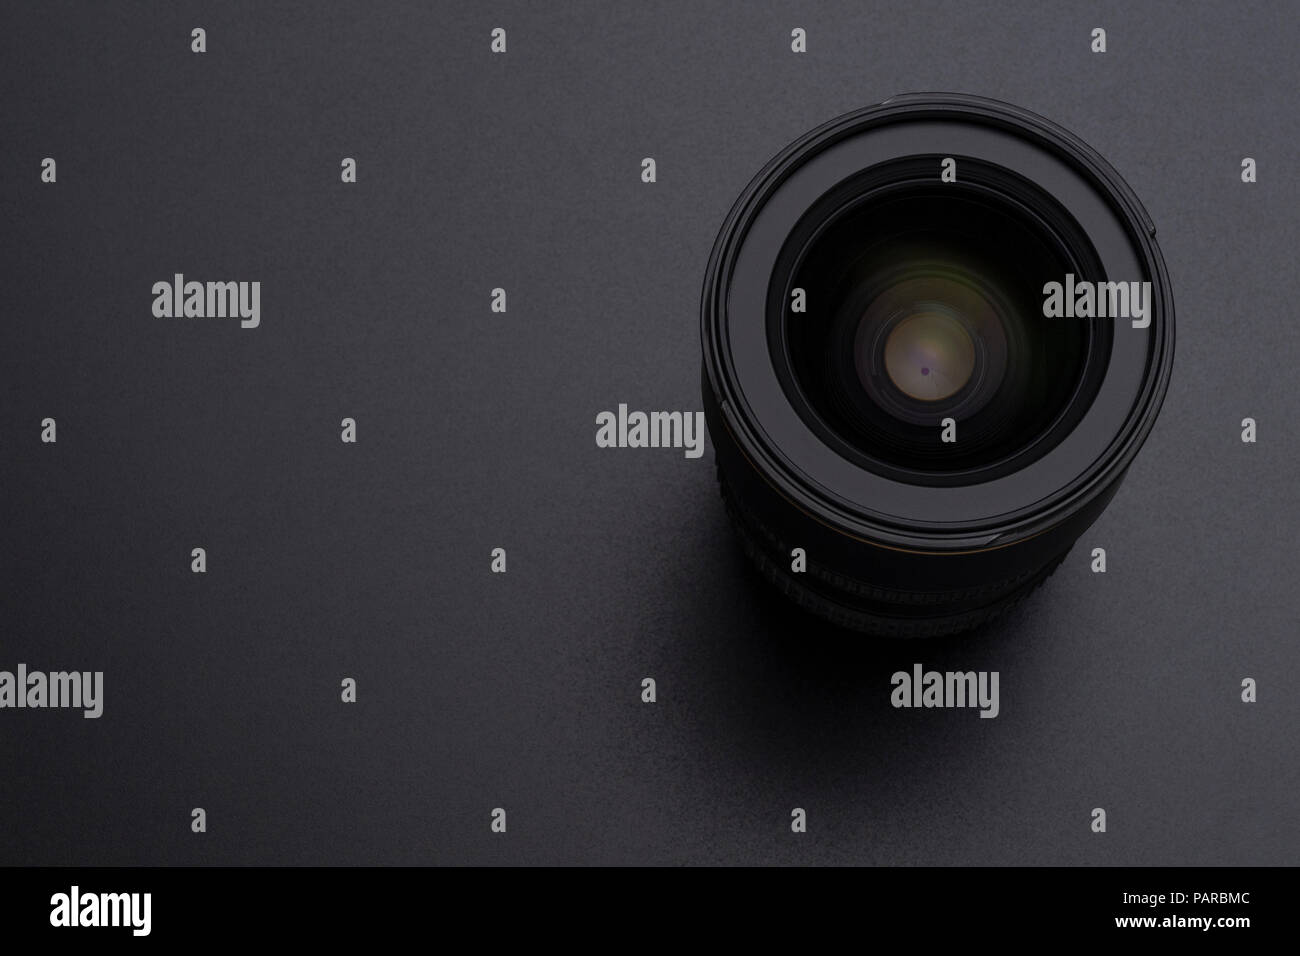 Photo DSLR camera or video lens close-up image on black background - Stock Image